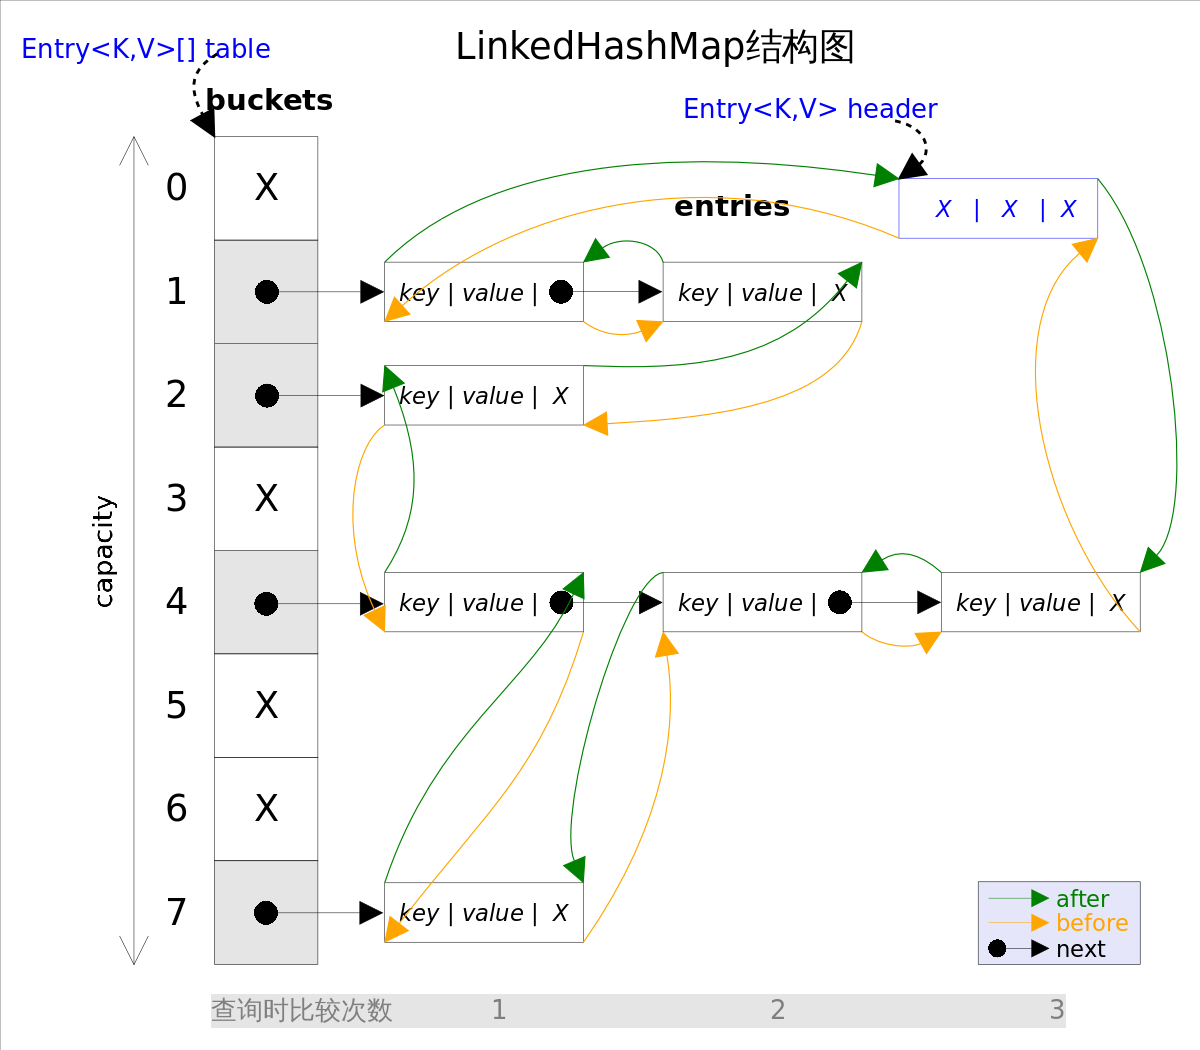 LinkedHashMap_base